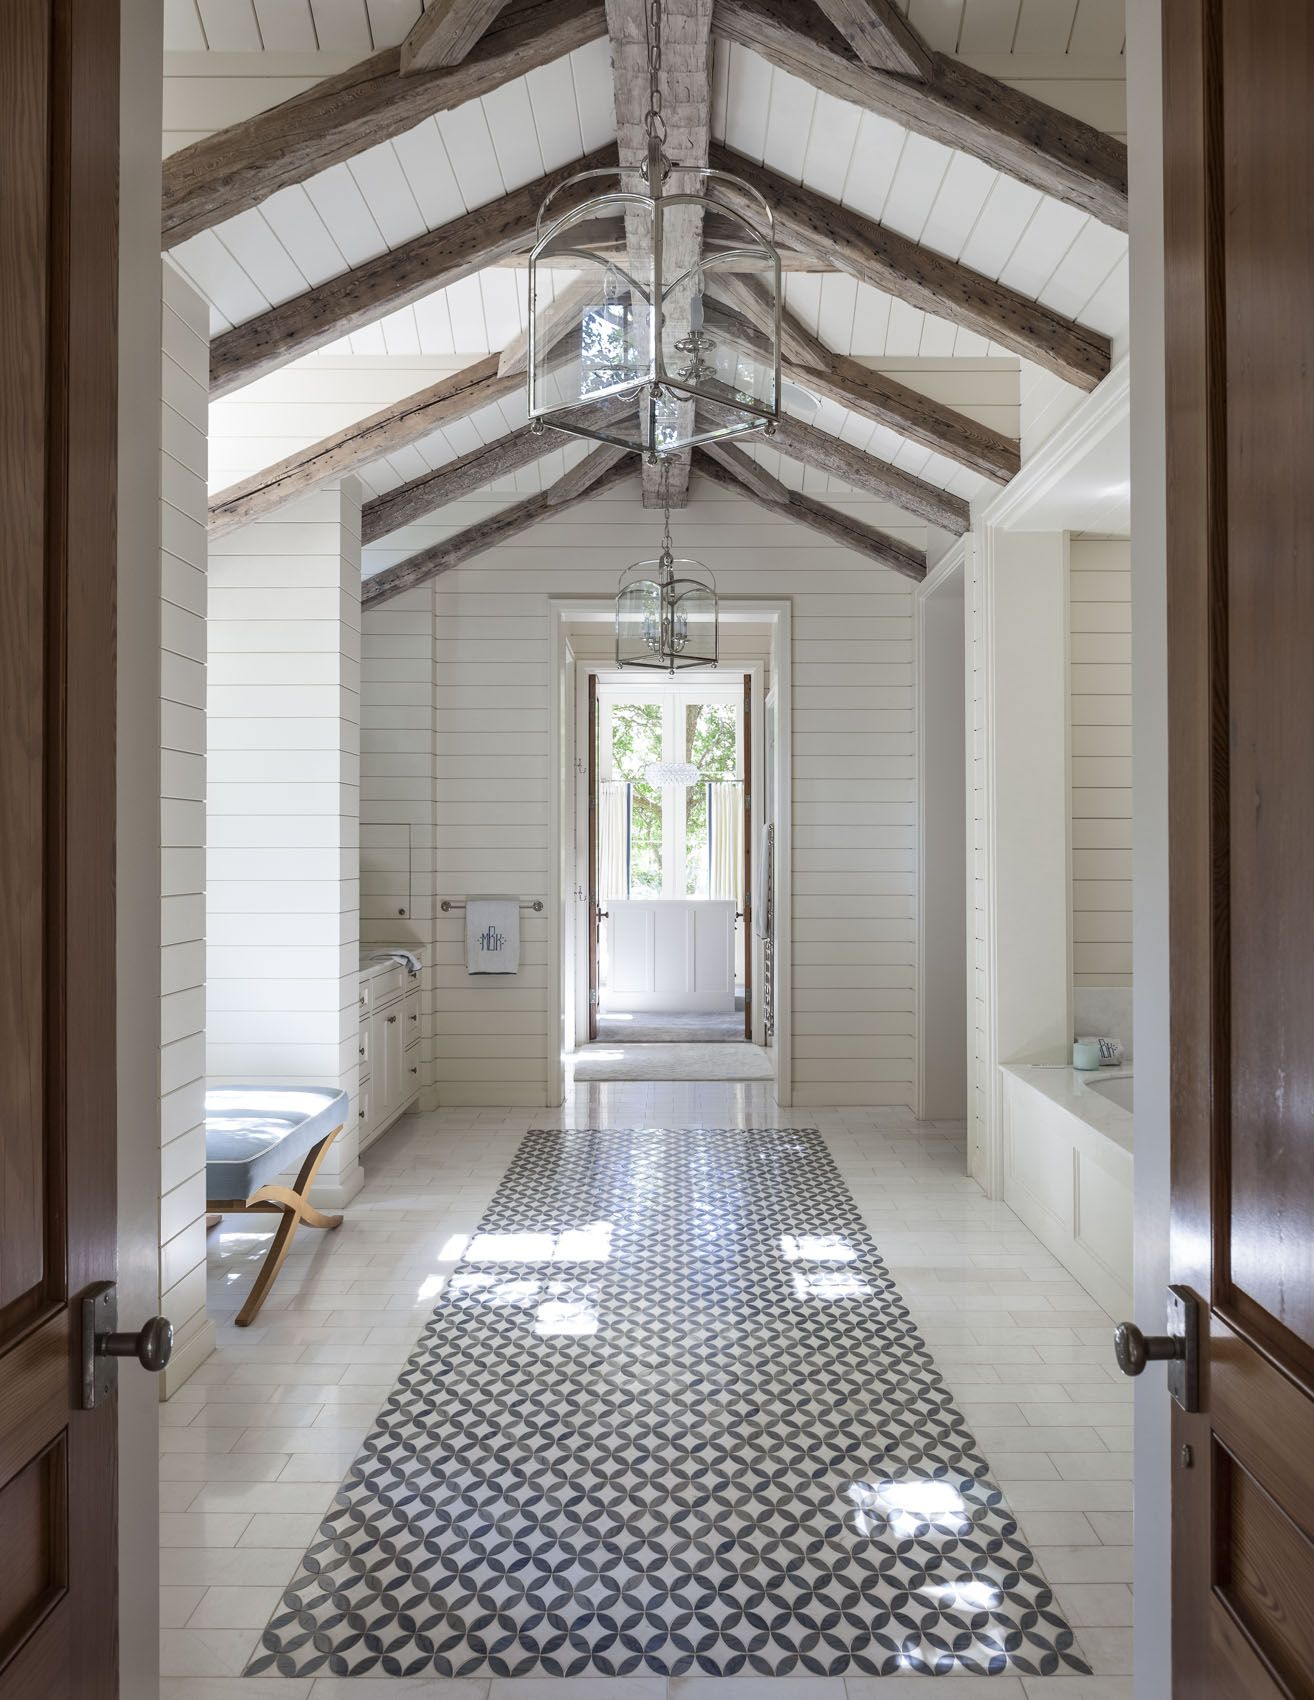 Vaulted Ceiling Bathroom Design Gorgeous Bathroom Designs Shiplap Ceiling Shiplap Bathroom